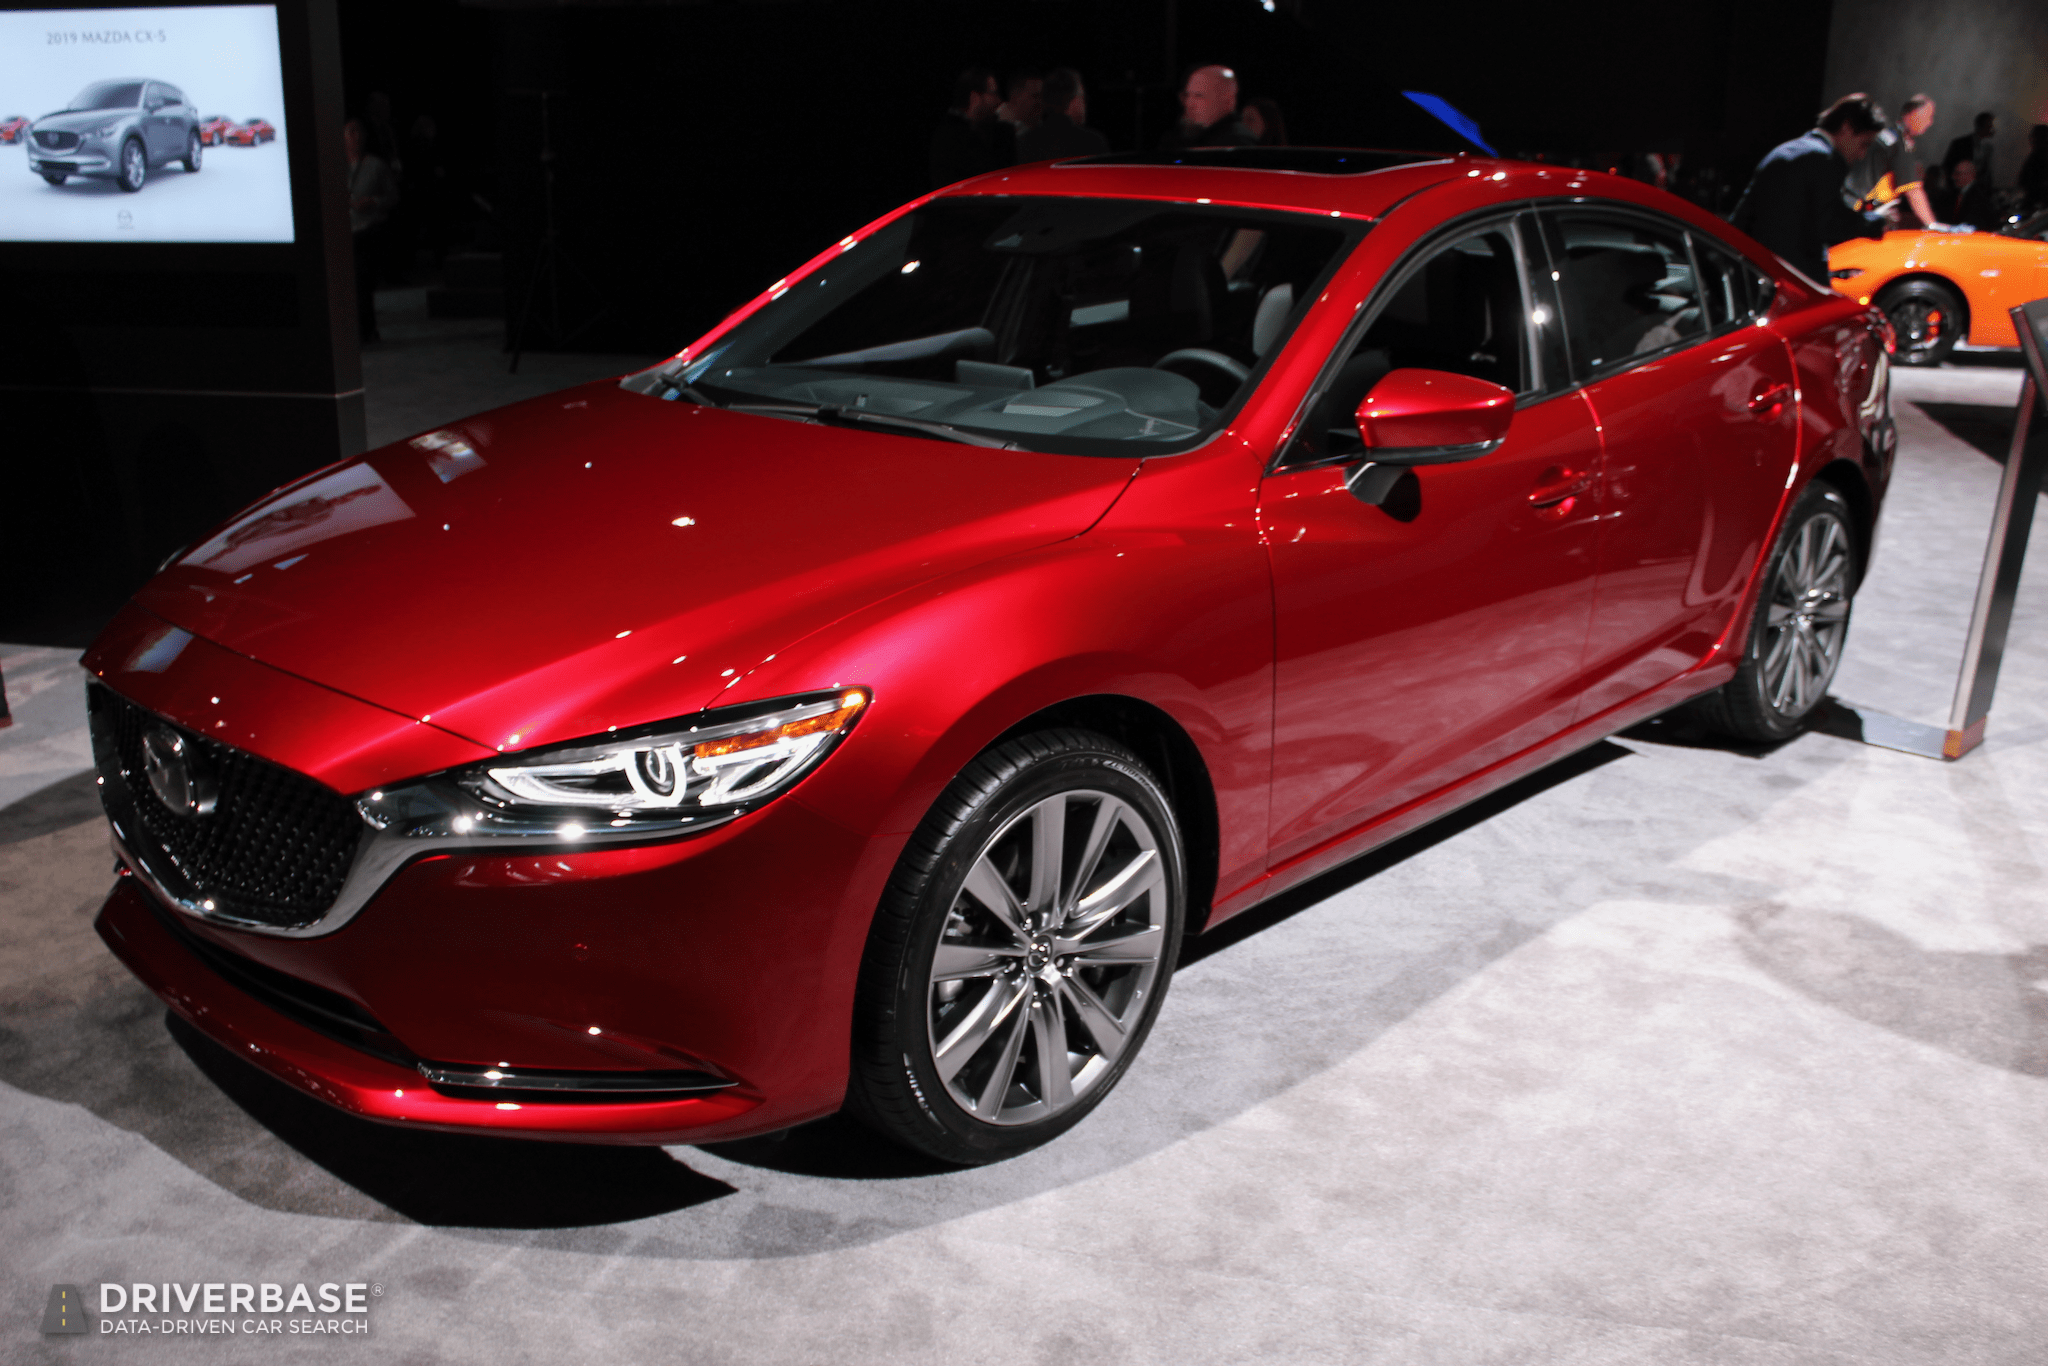 59 Gallery of 2020 Mazda Vehicles Rumors for 2020 Mazda Vehicles